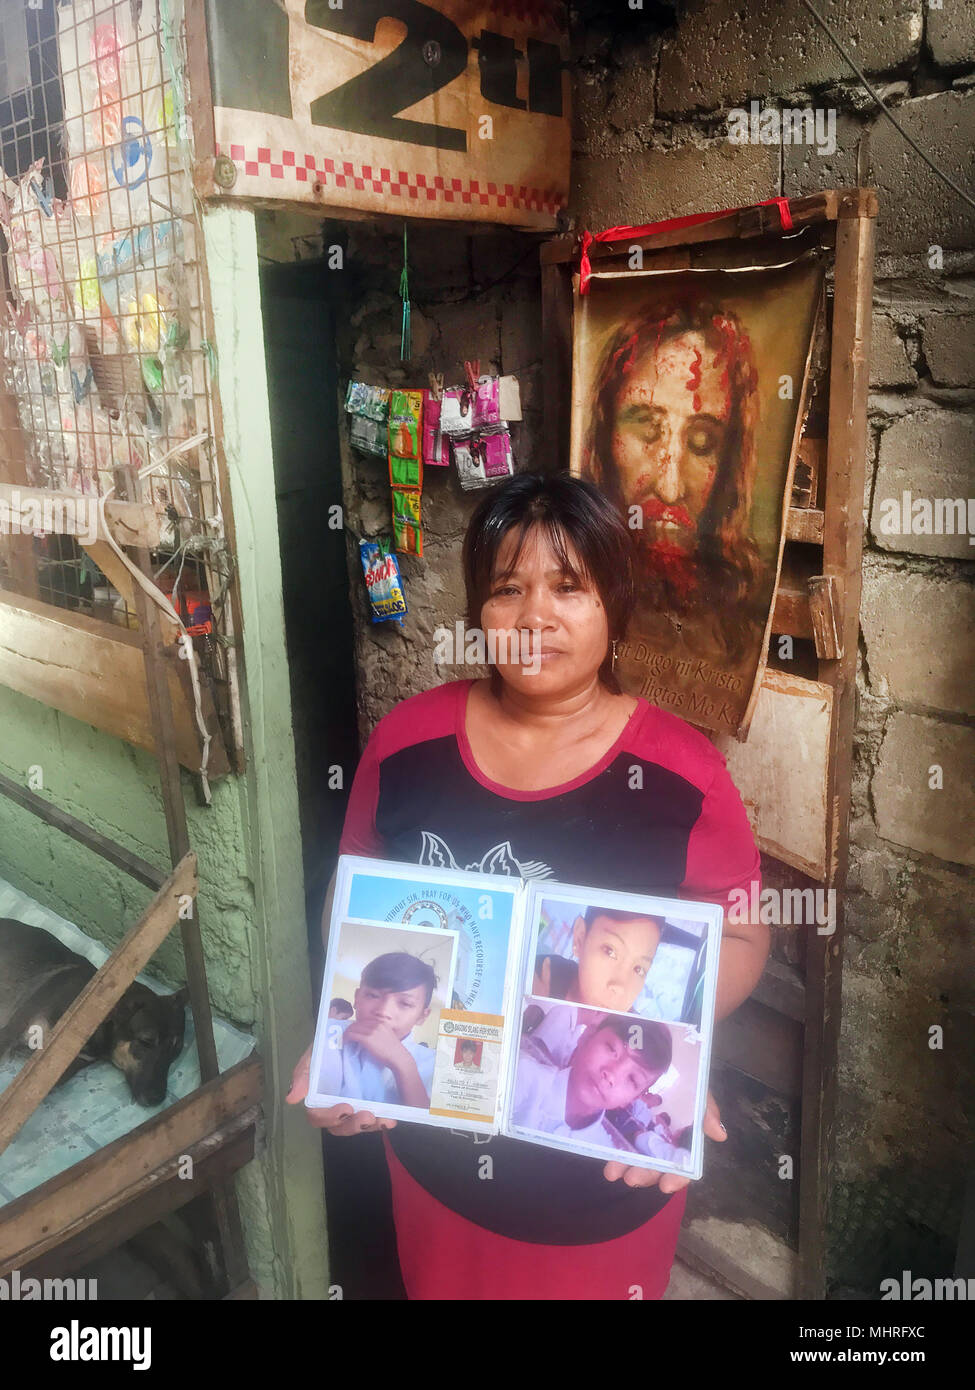 FILED - 19 April 2018, Philippines, Manila: The Filipino Emily Soriano showing photos in front of her house in Bagong Silang of her son who was shot. The 15 year old is one of thousands of victims of the anti-drugs war led by president Rodrigo Duterte. Photo: Christoph Sator/dpa - Stock Image